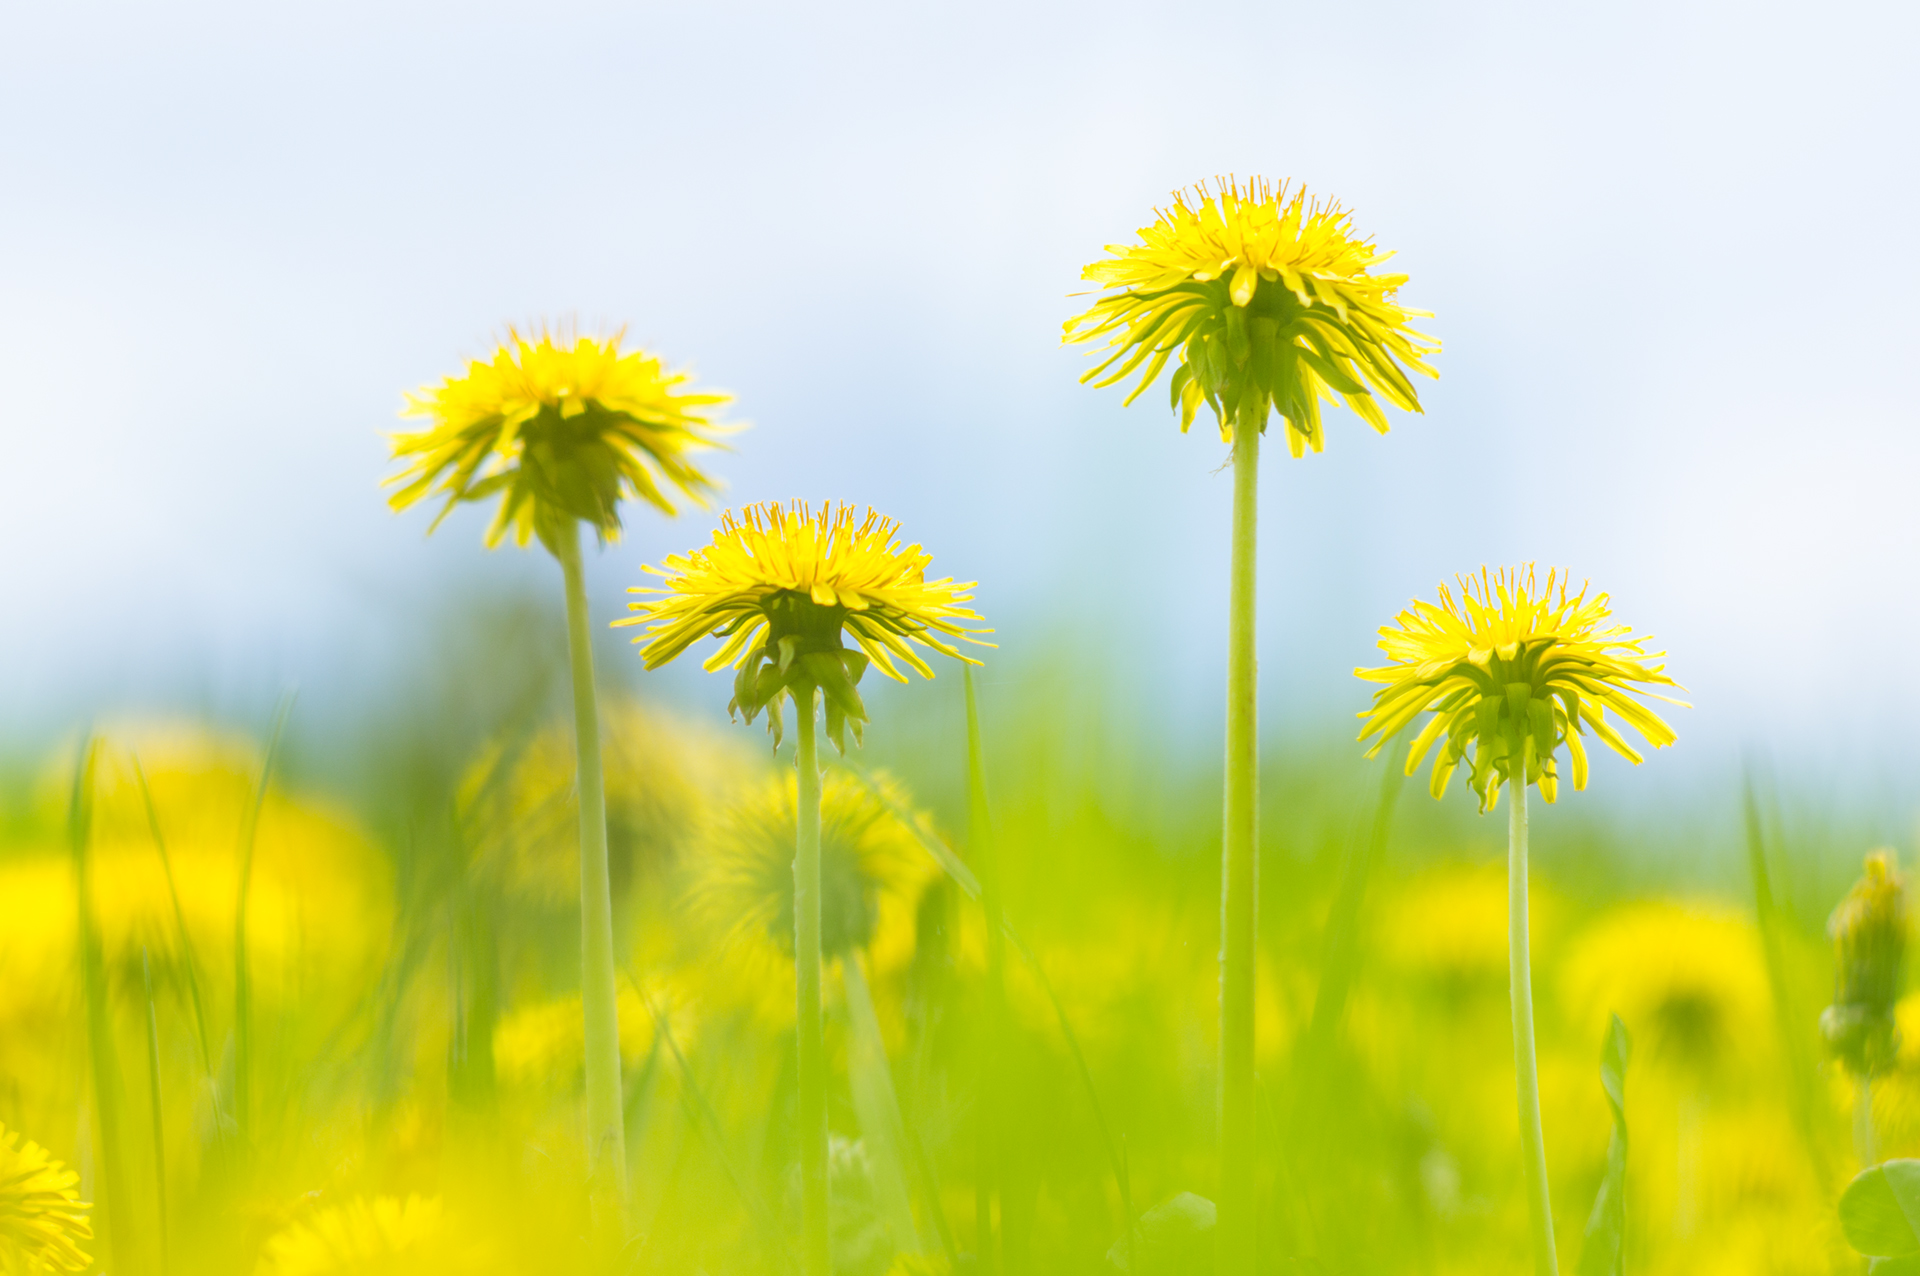 Dandelion Flowers in Meadow, very shallow DOF. Captured with 1969 Pentacon Lens 135/2,8